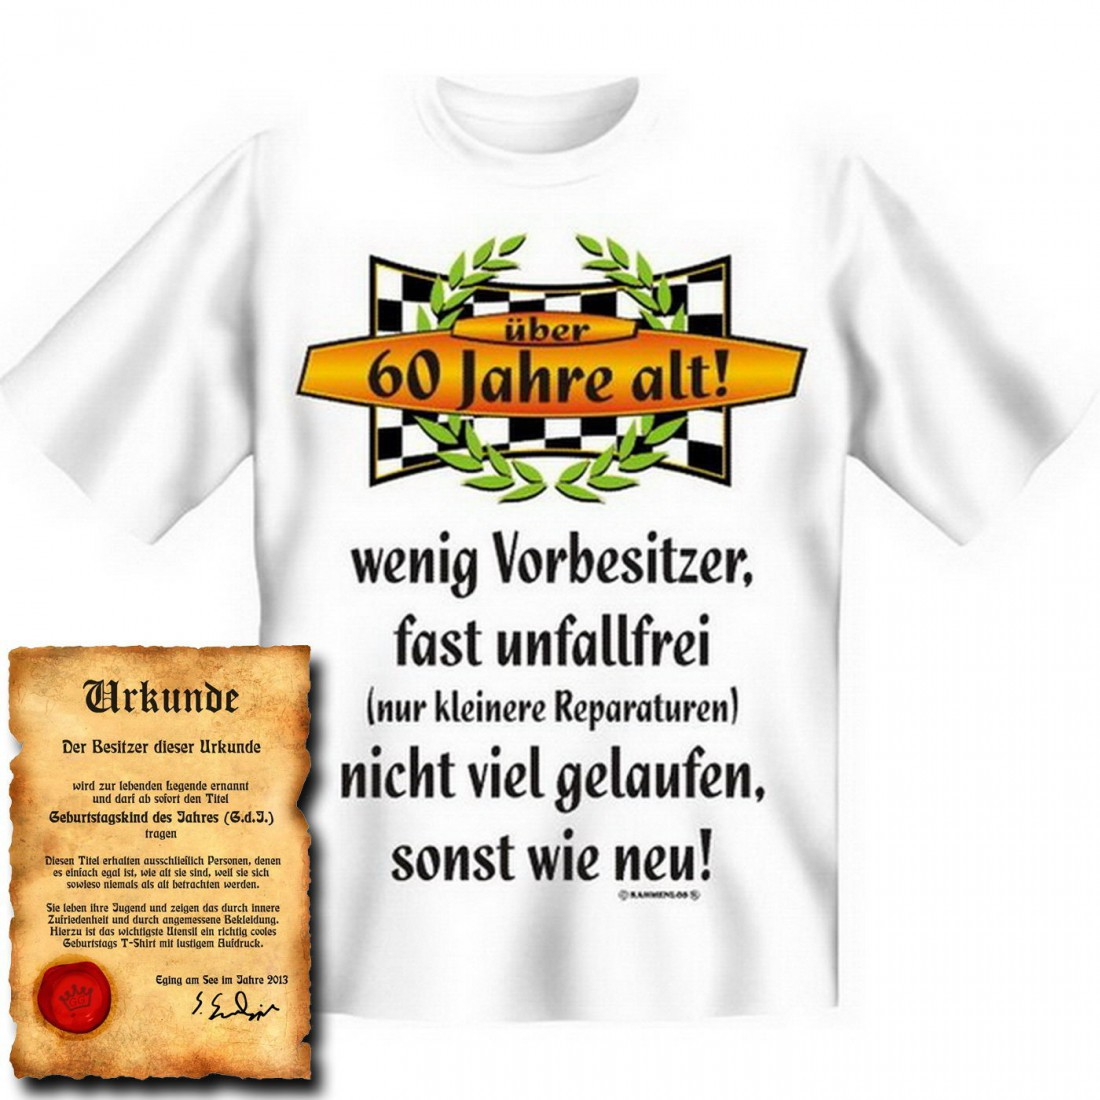 lustiges t shirt zum 60 geburtstag ber 60 jahre alt unfallfrei funshirt als coole. Black Bedroom Furniture Sets. Home Design Ideas